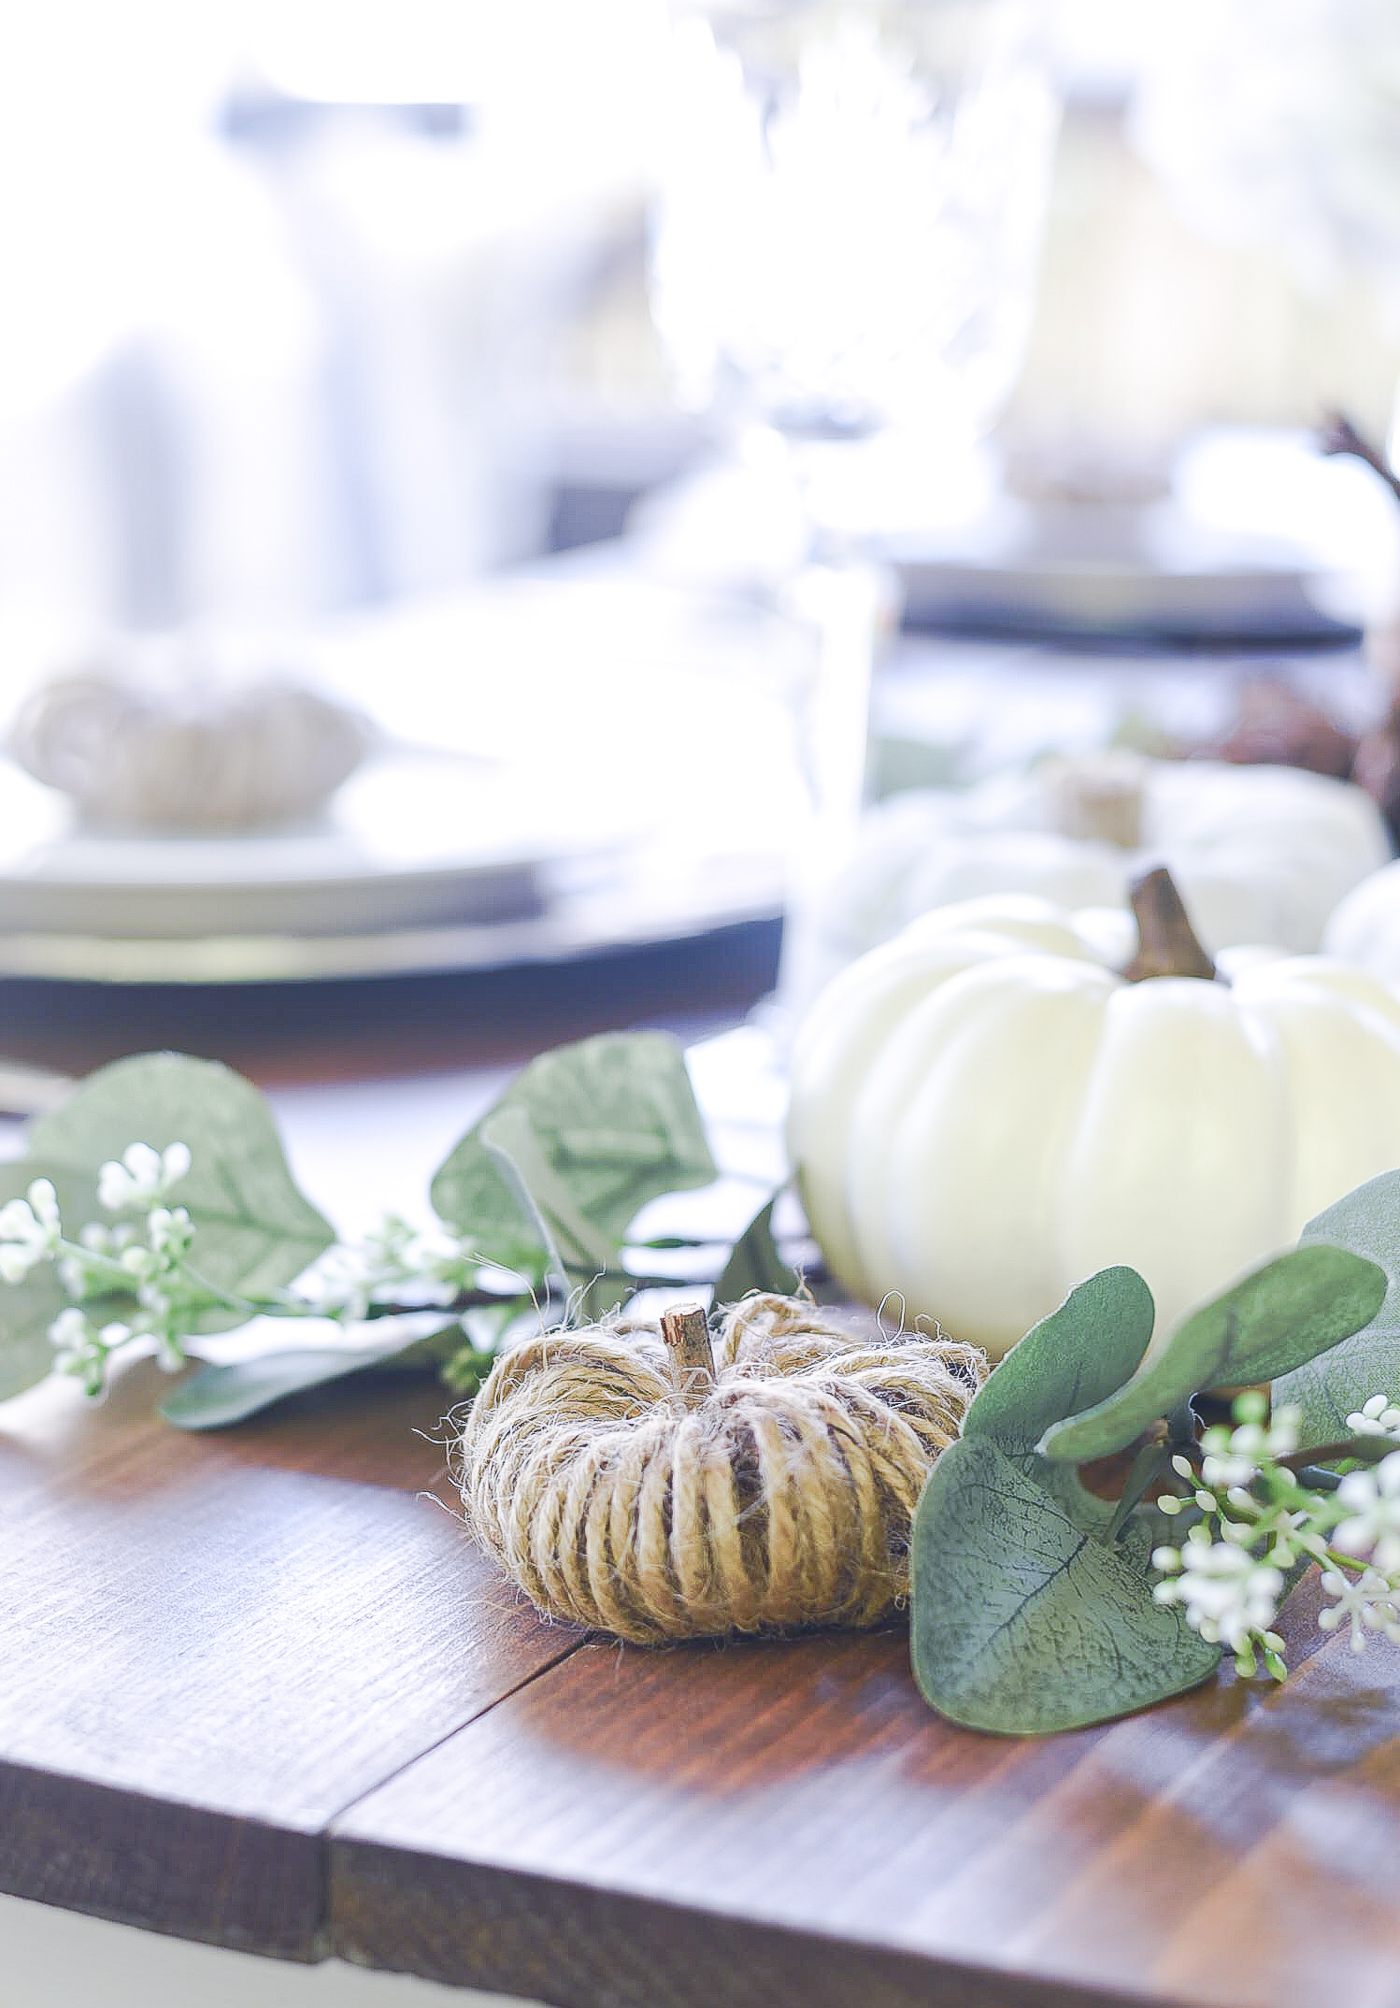 Thanksgiving Table Setting Idea - Pumpkin Centerpiece Idea - Pumpkin Table Setting Idea - Fall Table Setting in Gray, White, Jute, Neutral -